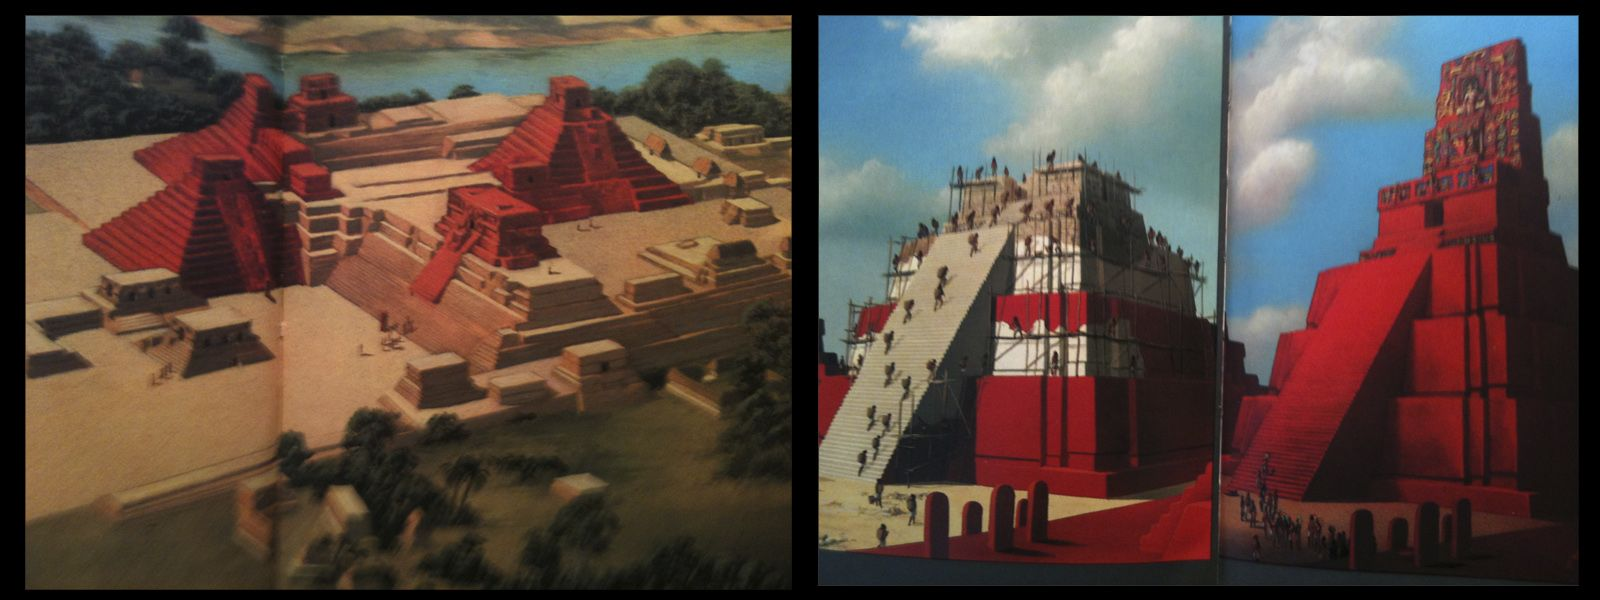 eugene ray architect radiant color in the jungle mayan temples were painted red